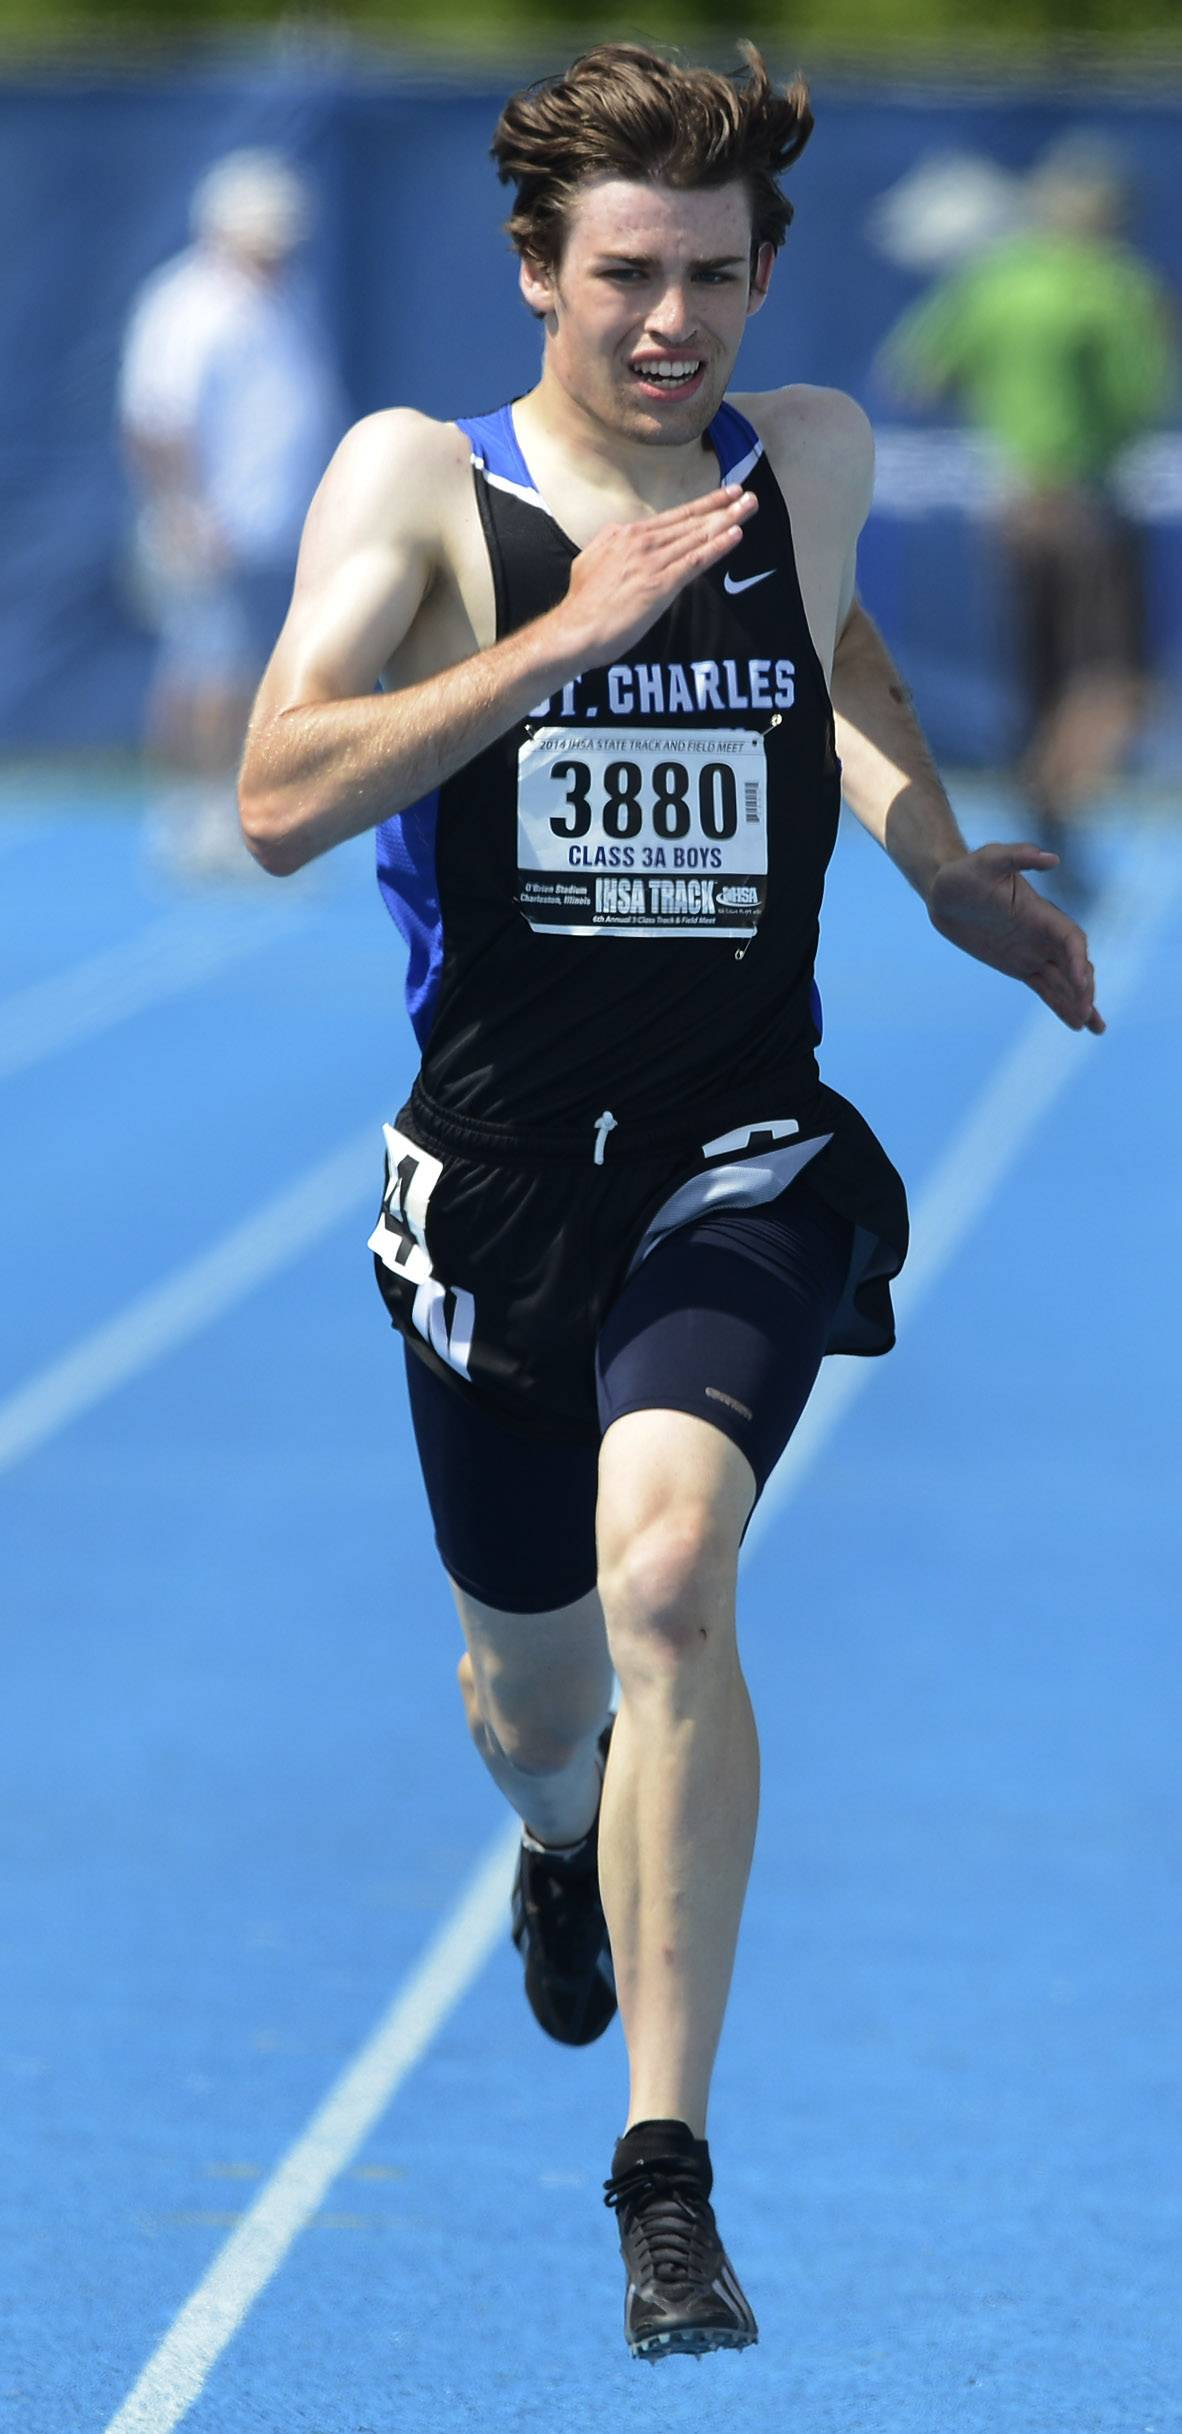 St. Charles North's Jack Feeney competes in the 800-meter run during the boys Class 3A state track and field preliminaries in Charleston Friday.